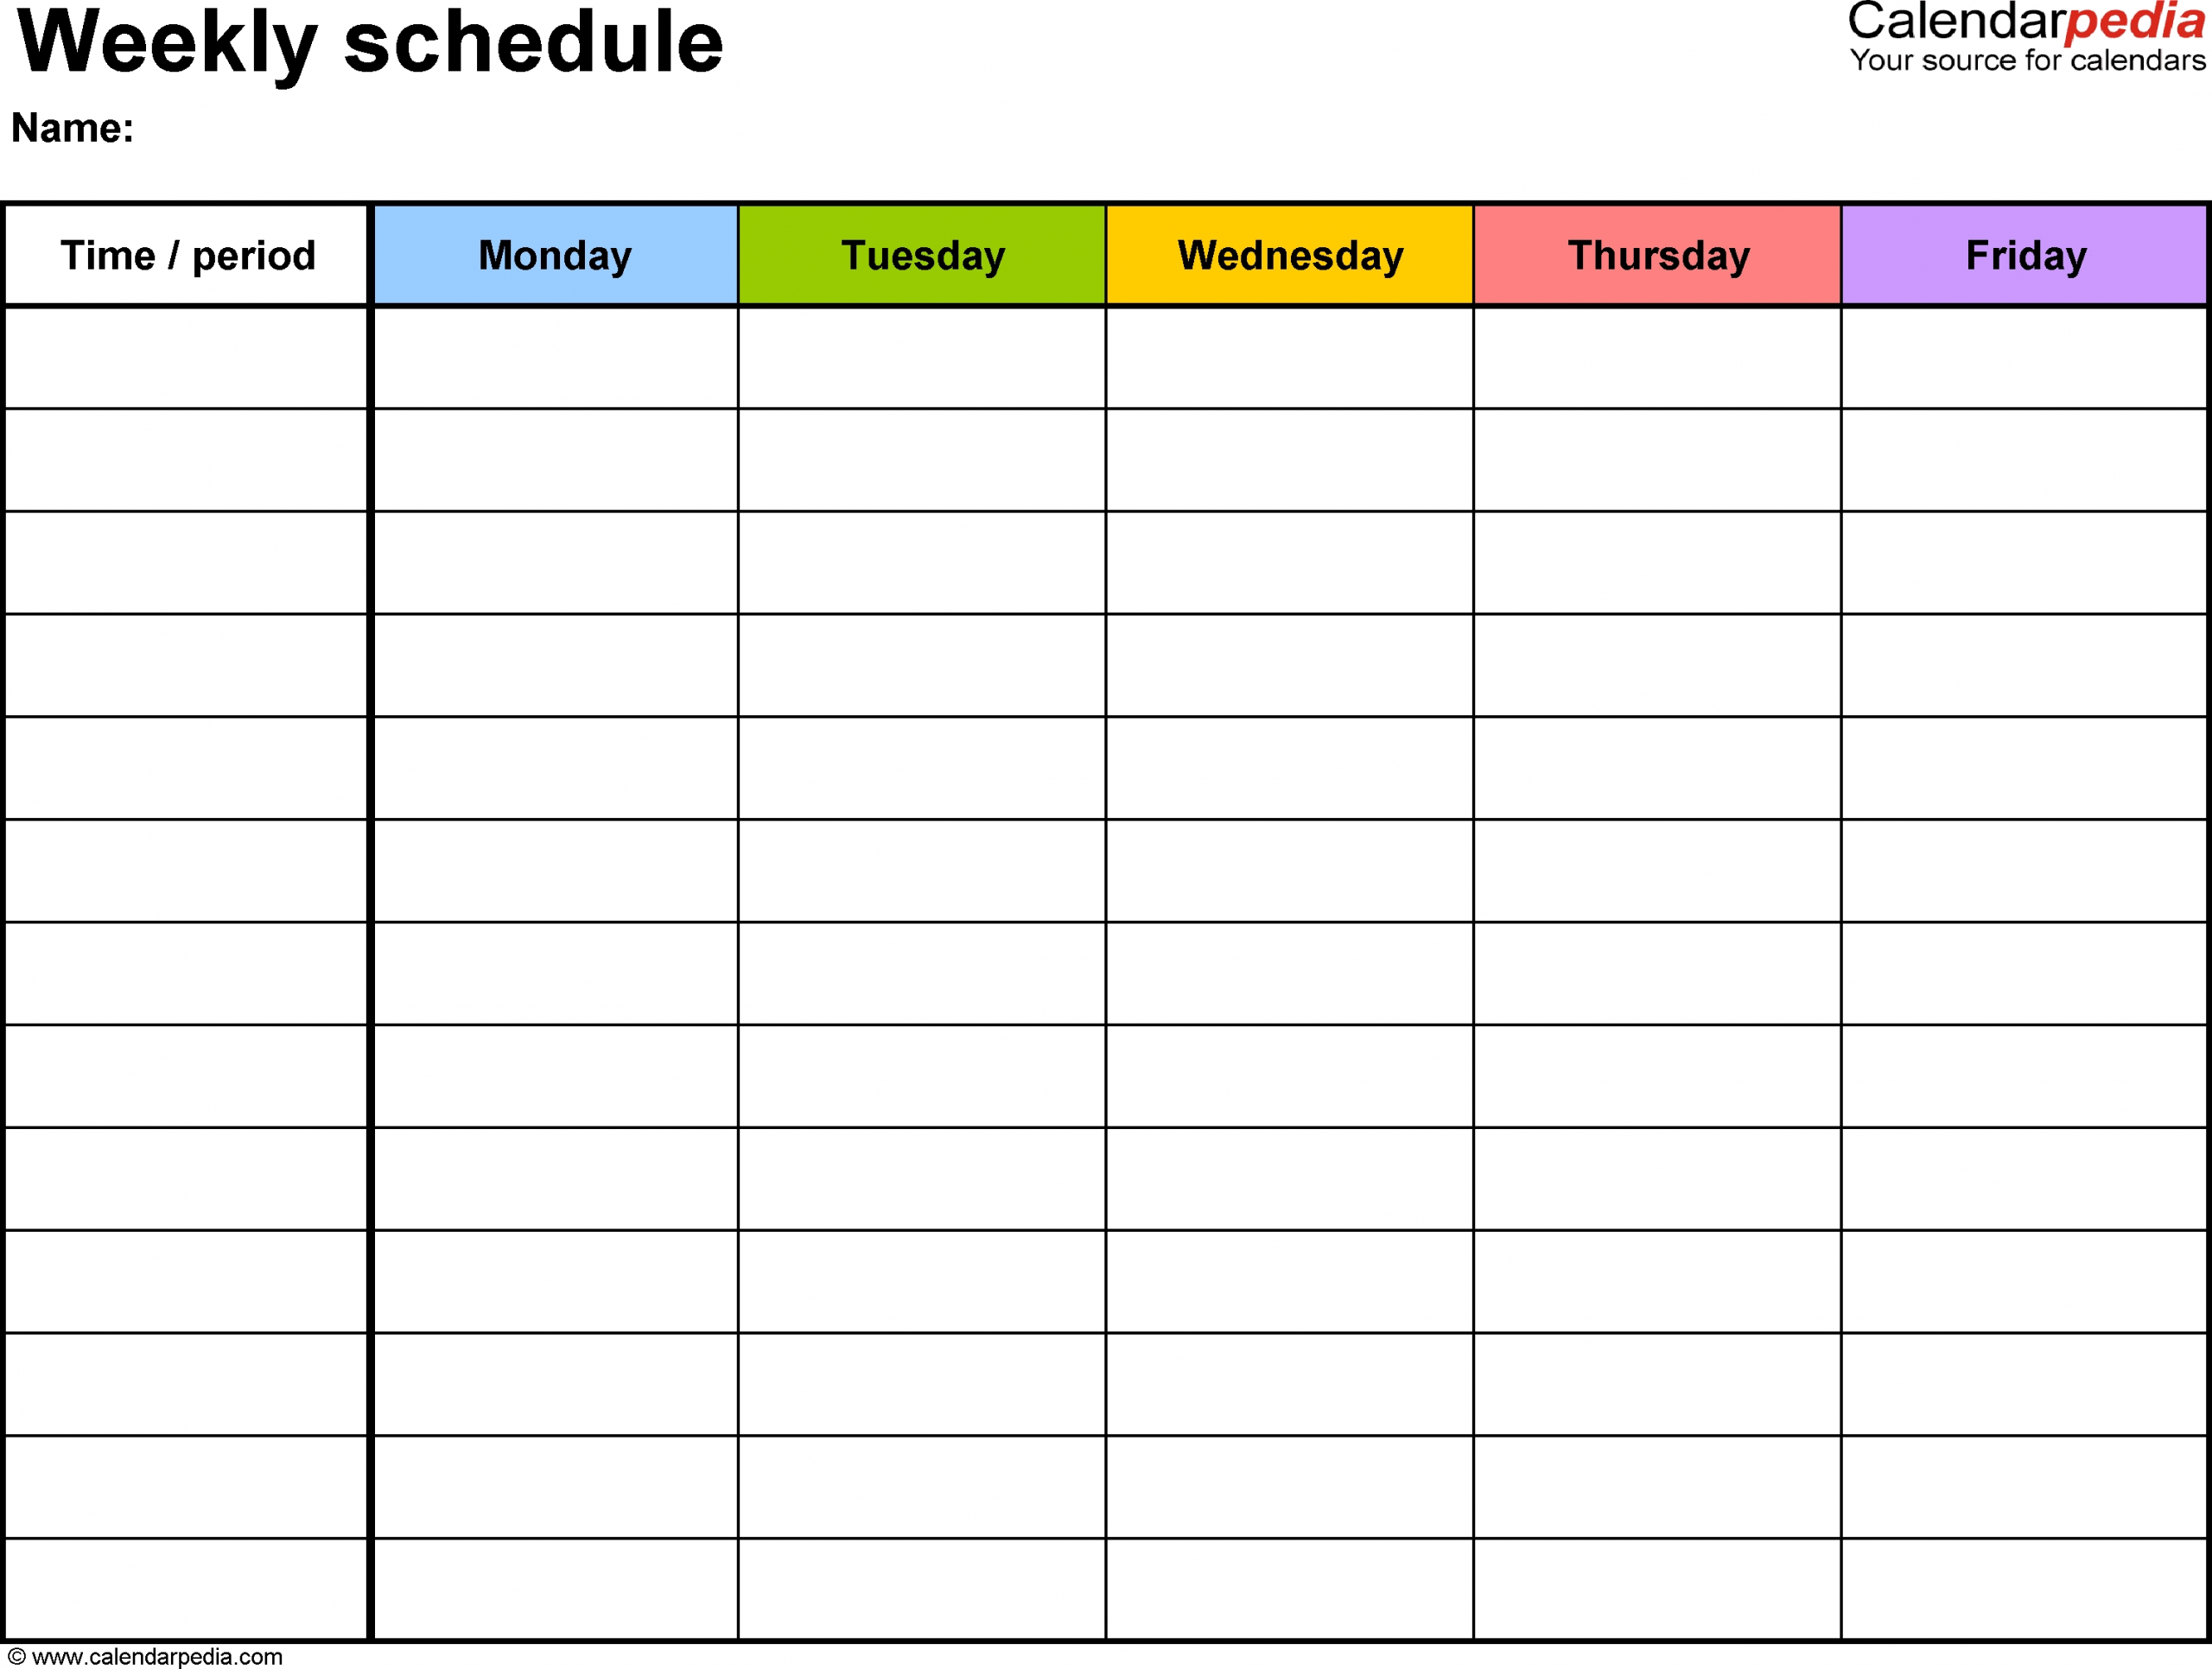 Weekly Calendar Template - Fotolip Rich Image And